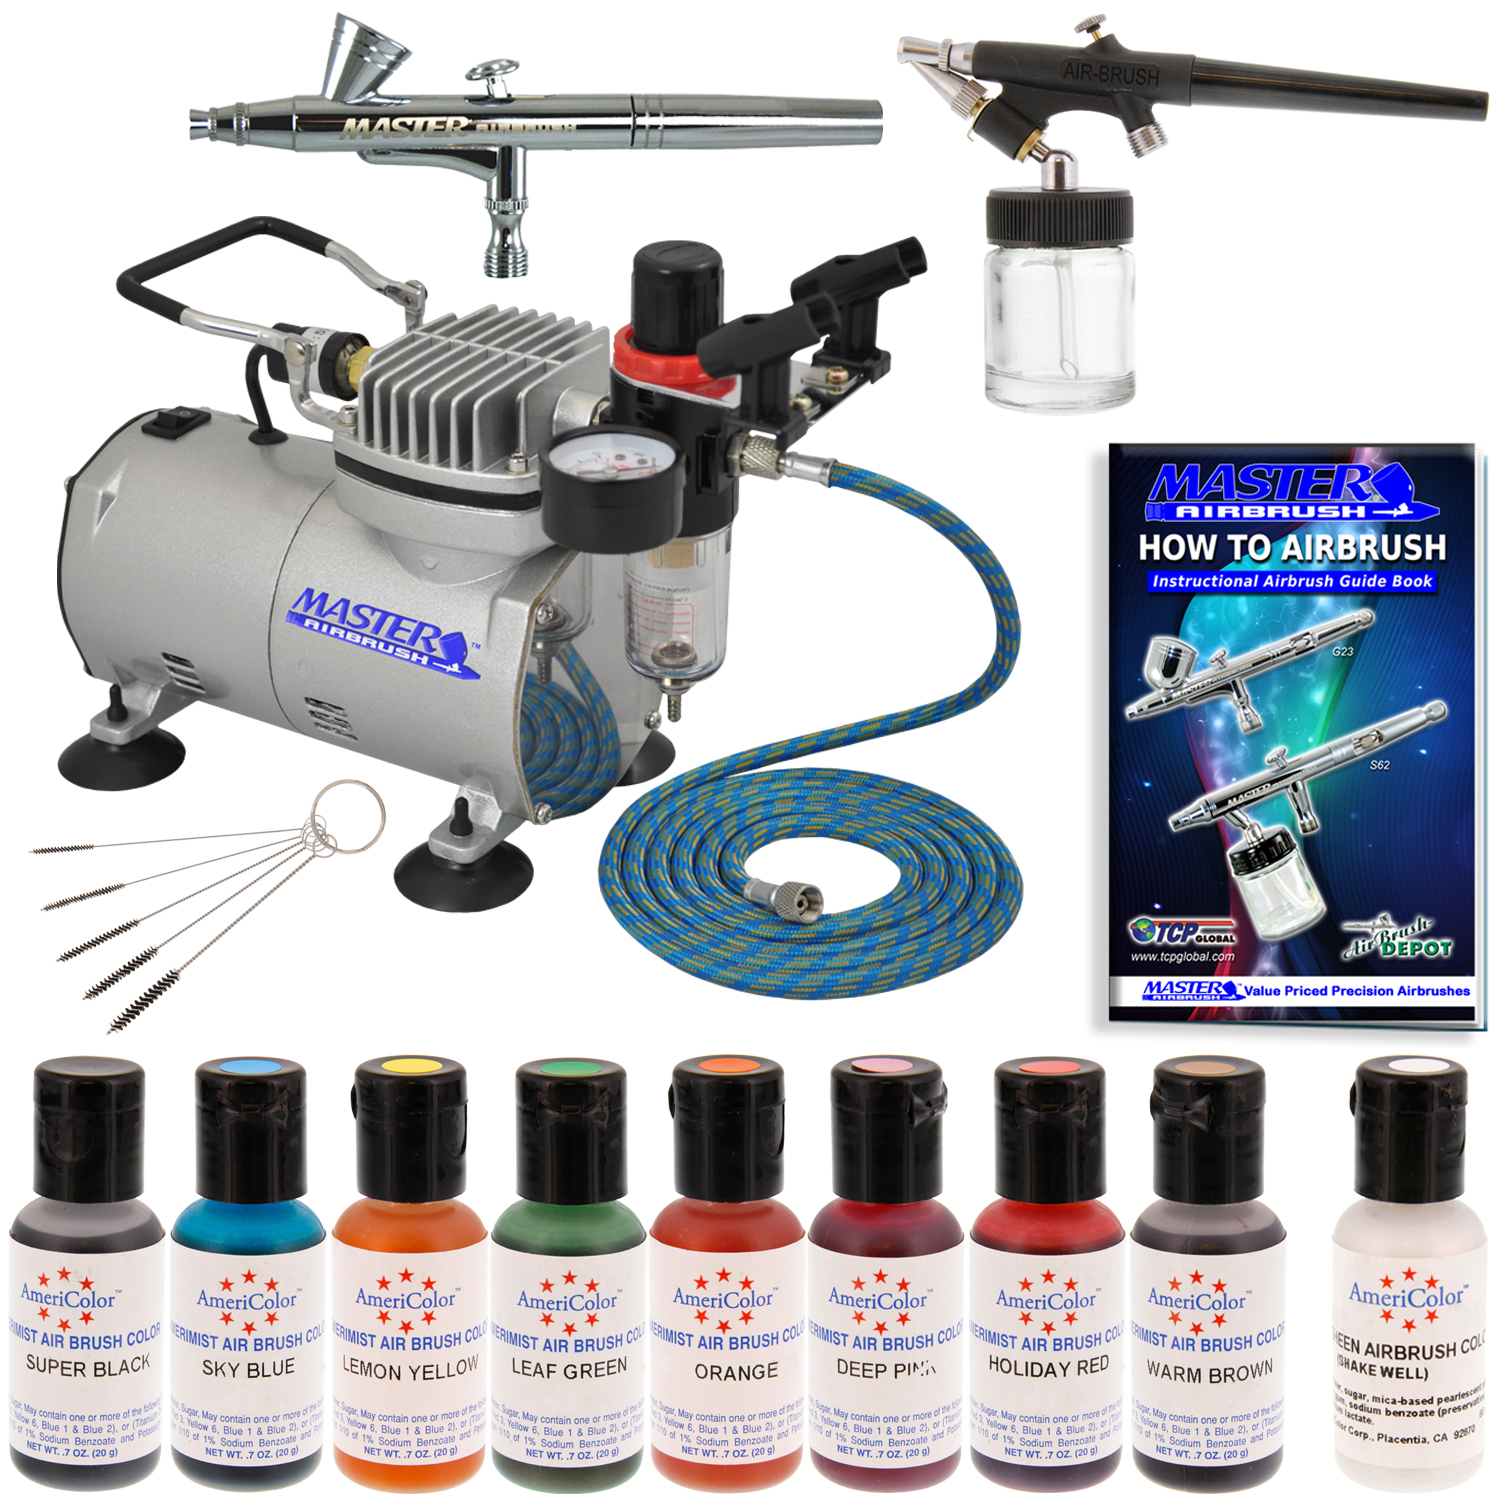 Artlogic Cake Decorating Airbrush Kit : 2 Airbrush Cake Decorating Kit Compressor 12 Color Air ...